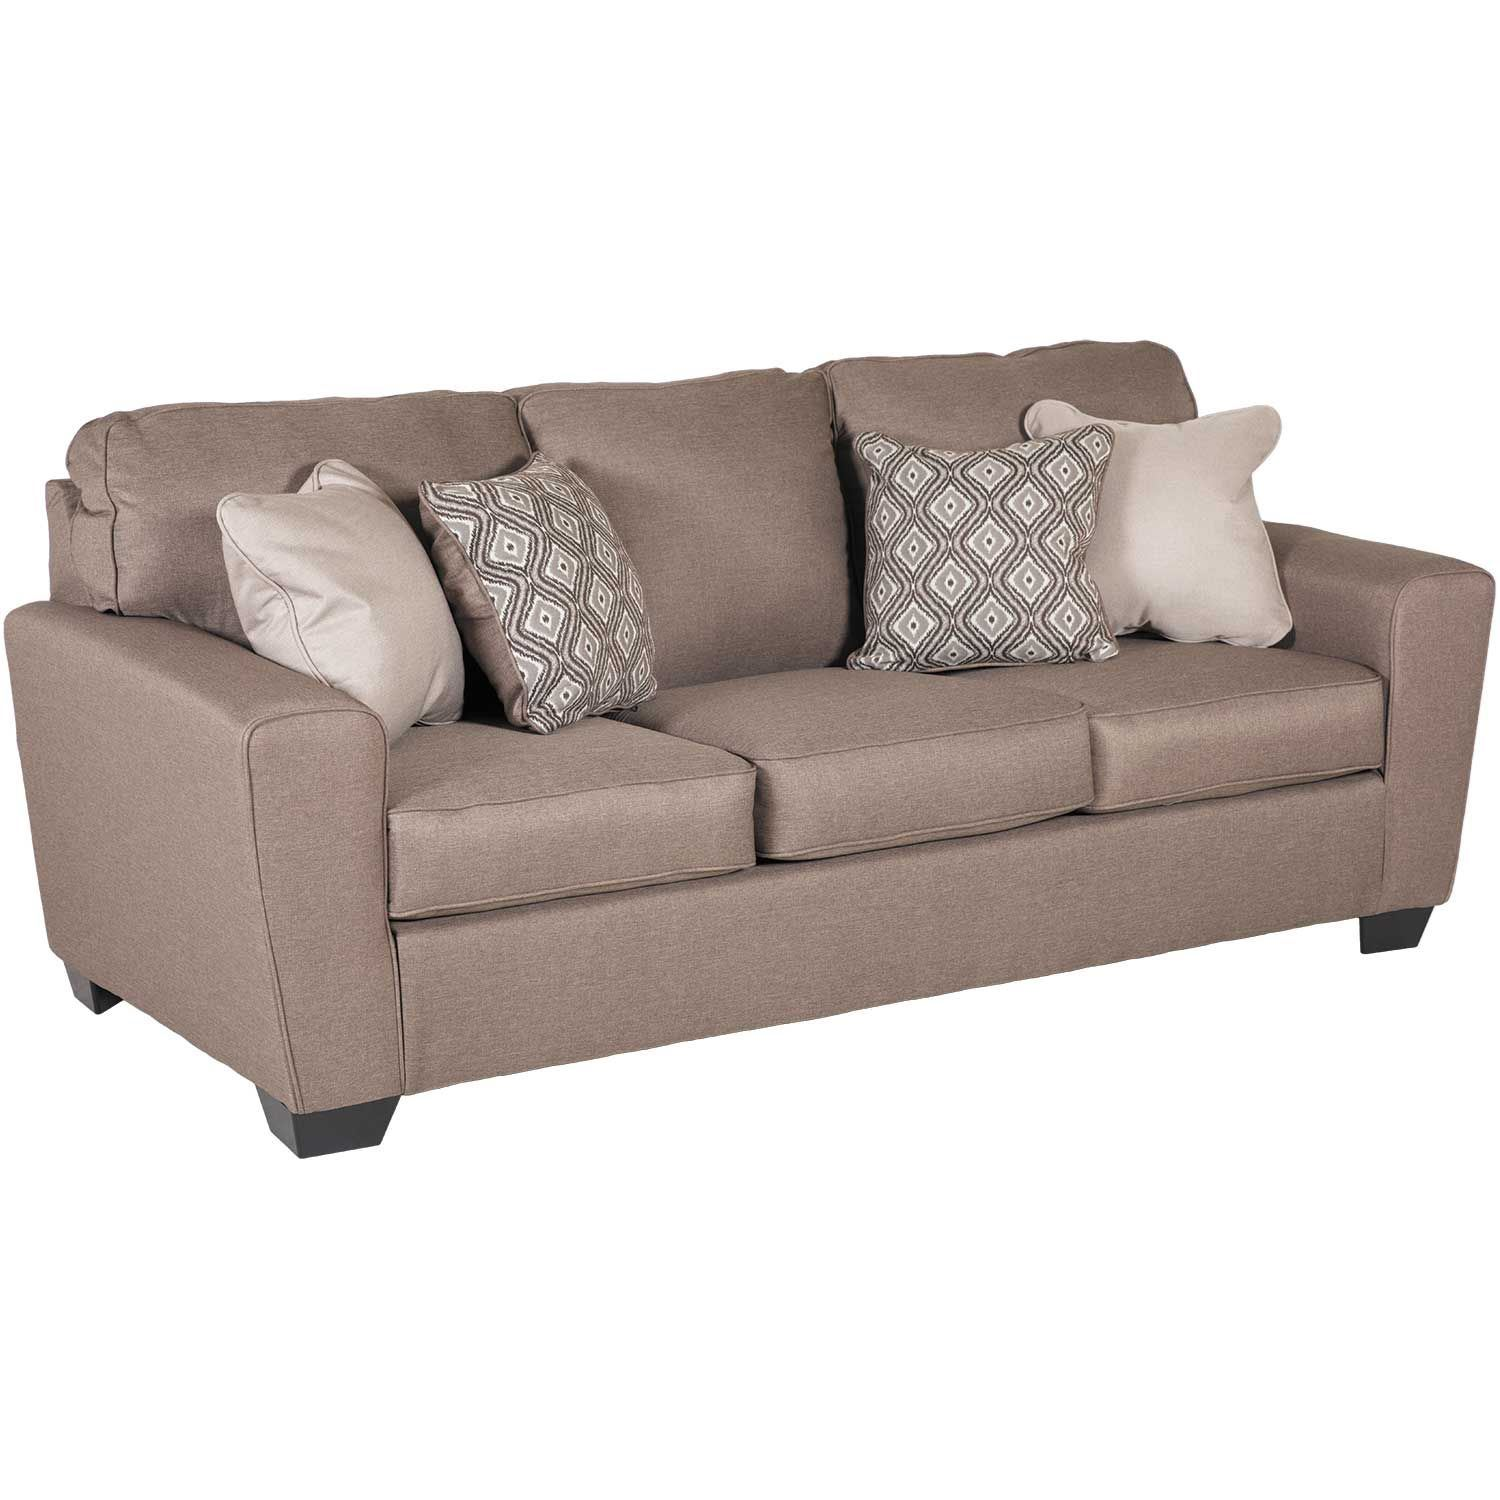 ... Picture Of Calicho Cashmere Queen Sleeper Sofa ...